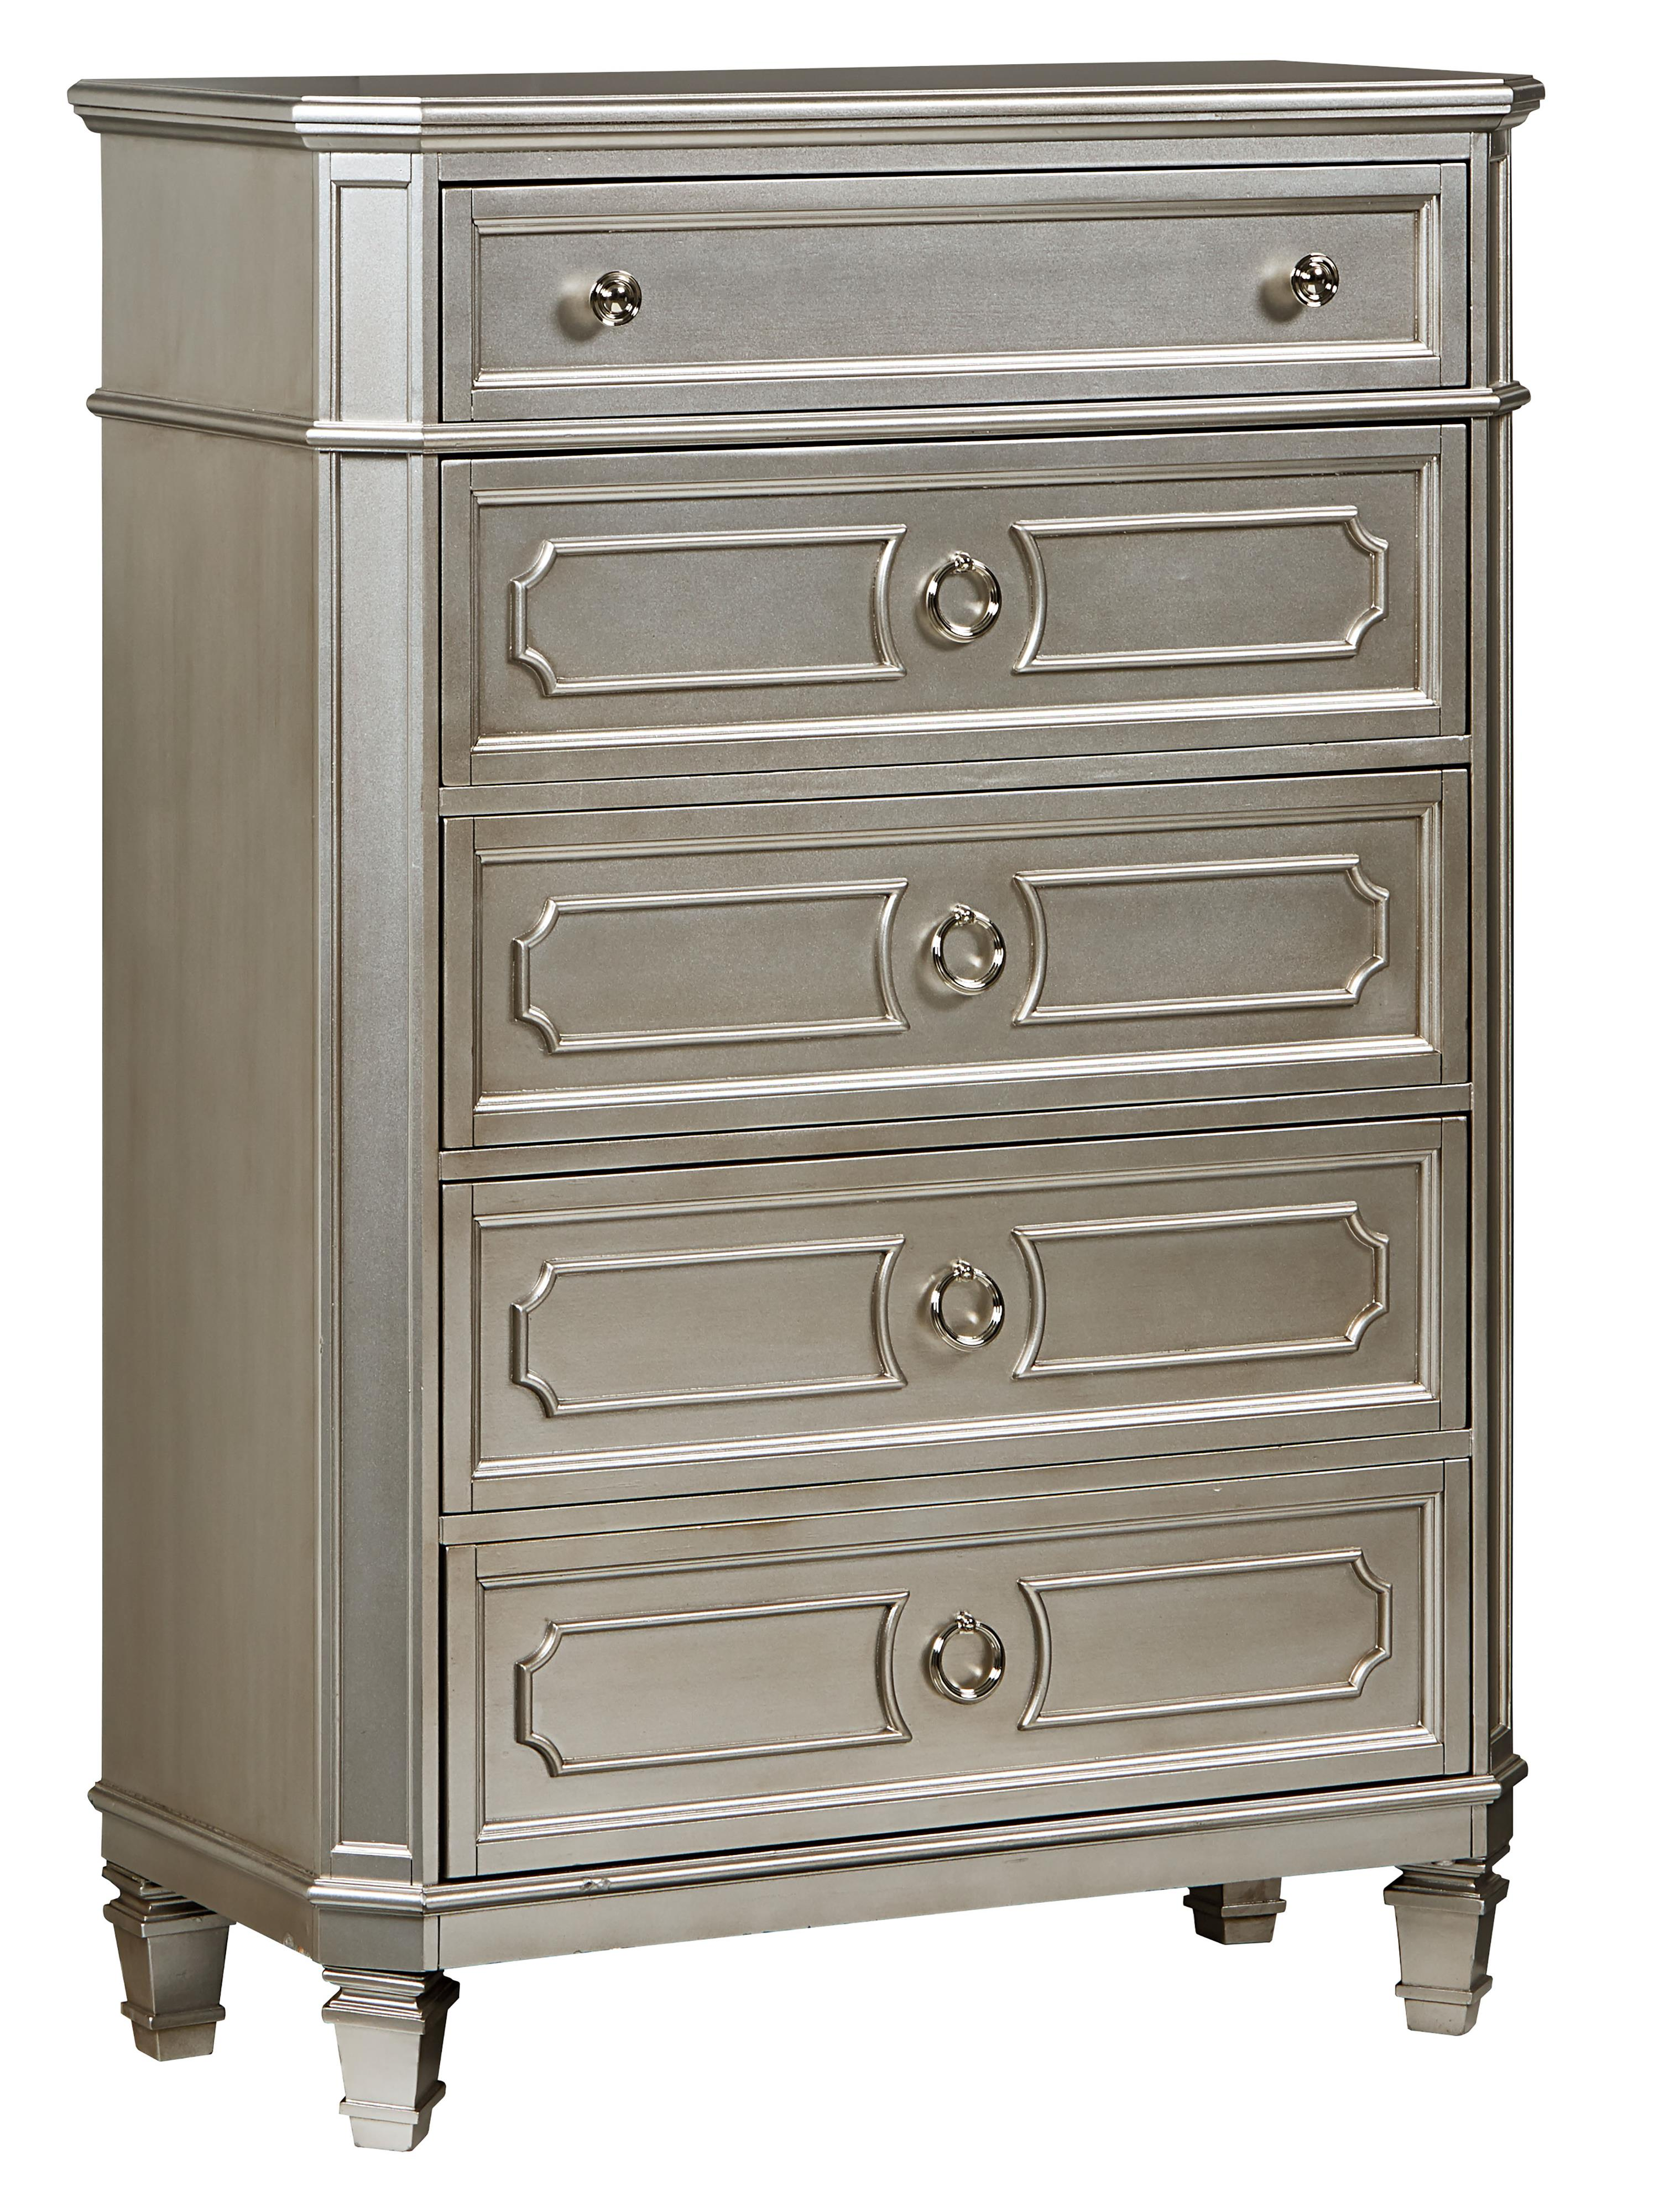 Silver Chest Of Drawers ~ Standard furniture windsor silver chest of drawers